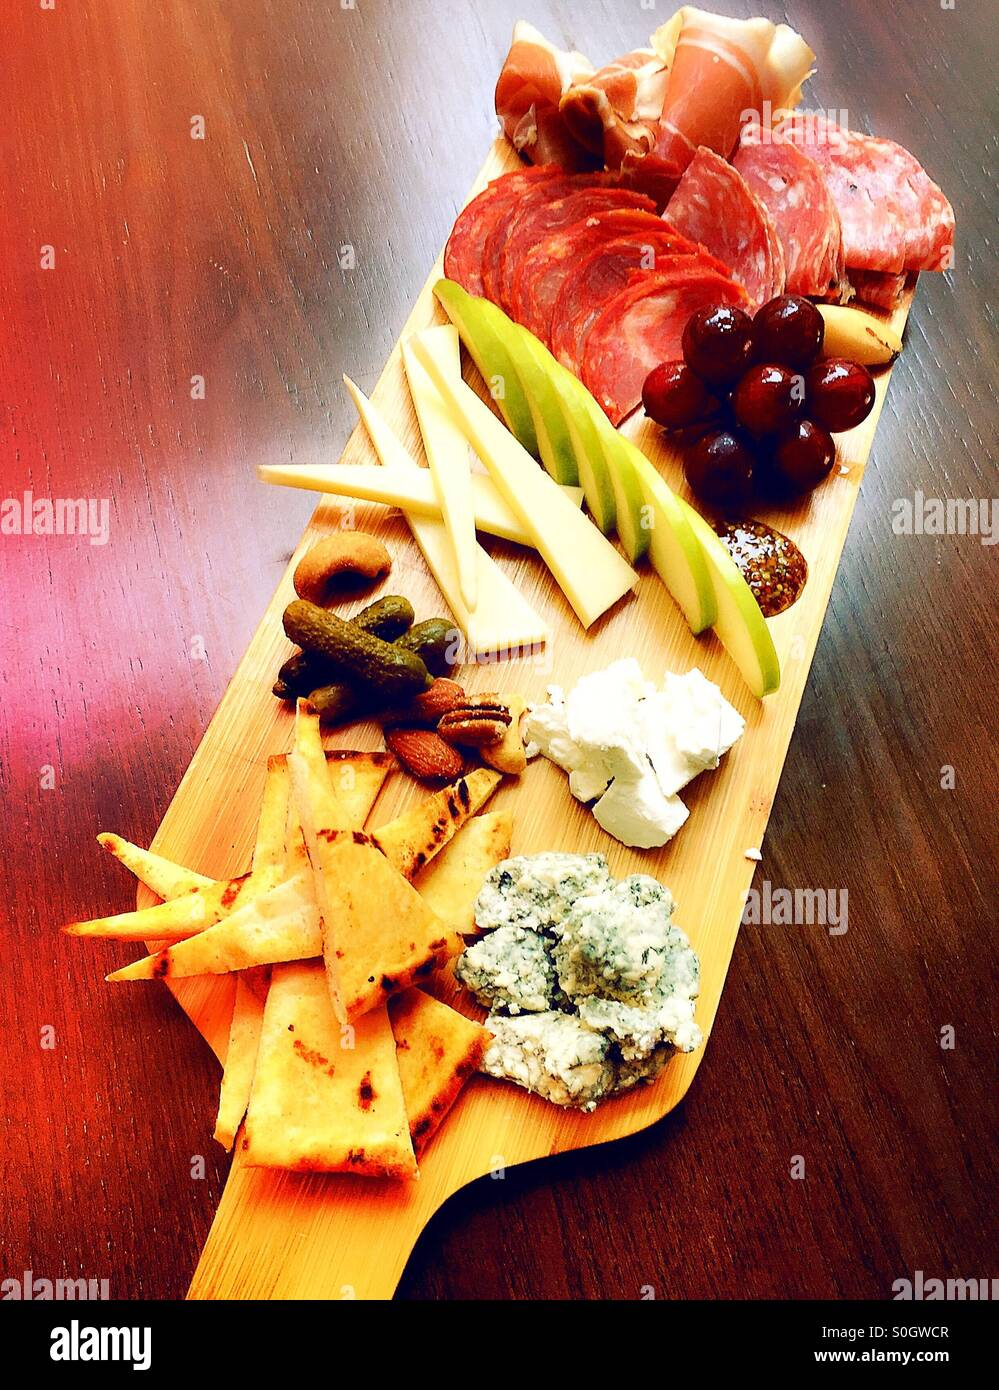 Charcuterie platter of meat and cheese and fruit - Stock Image